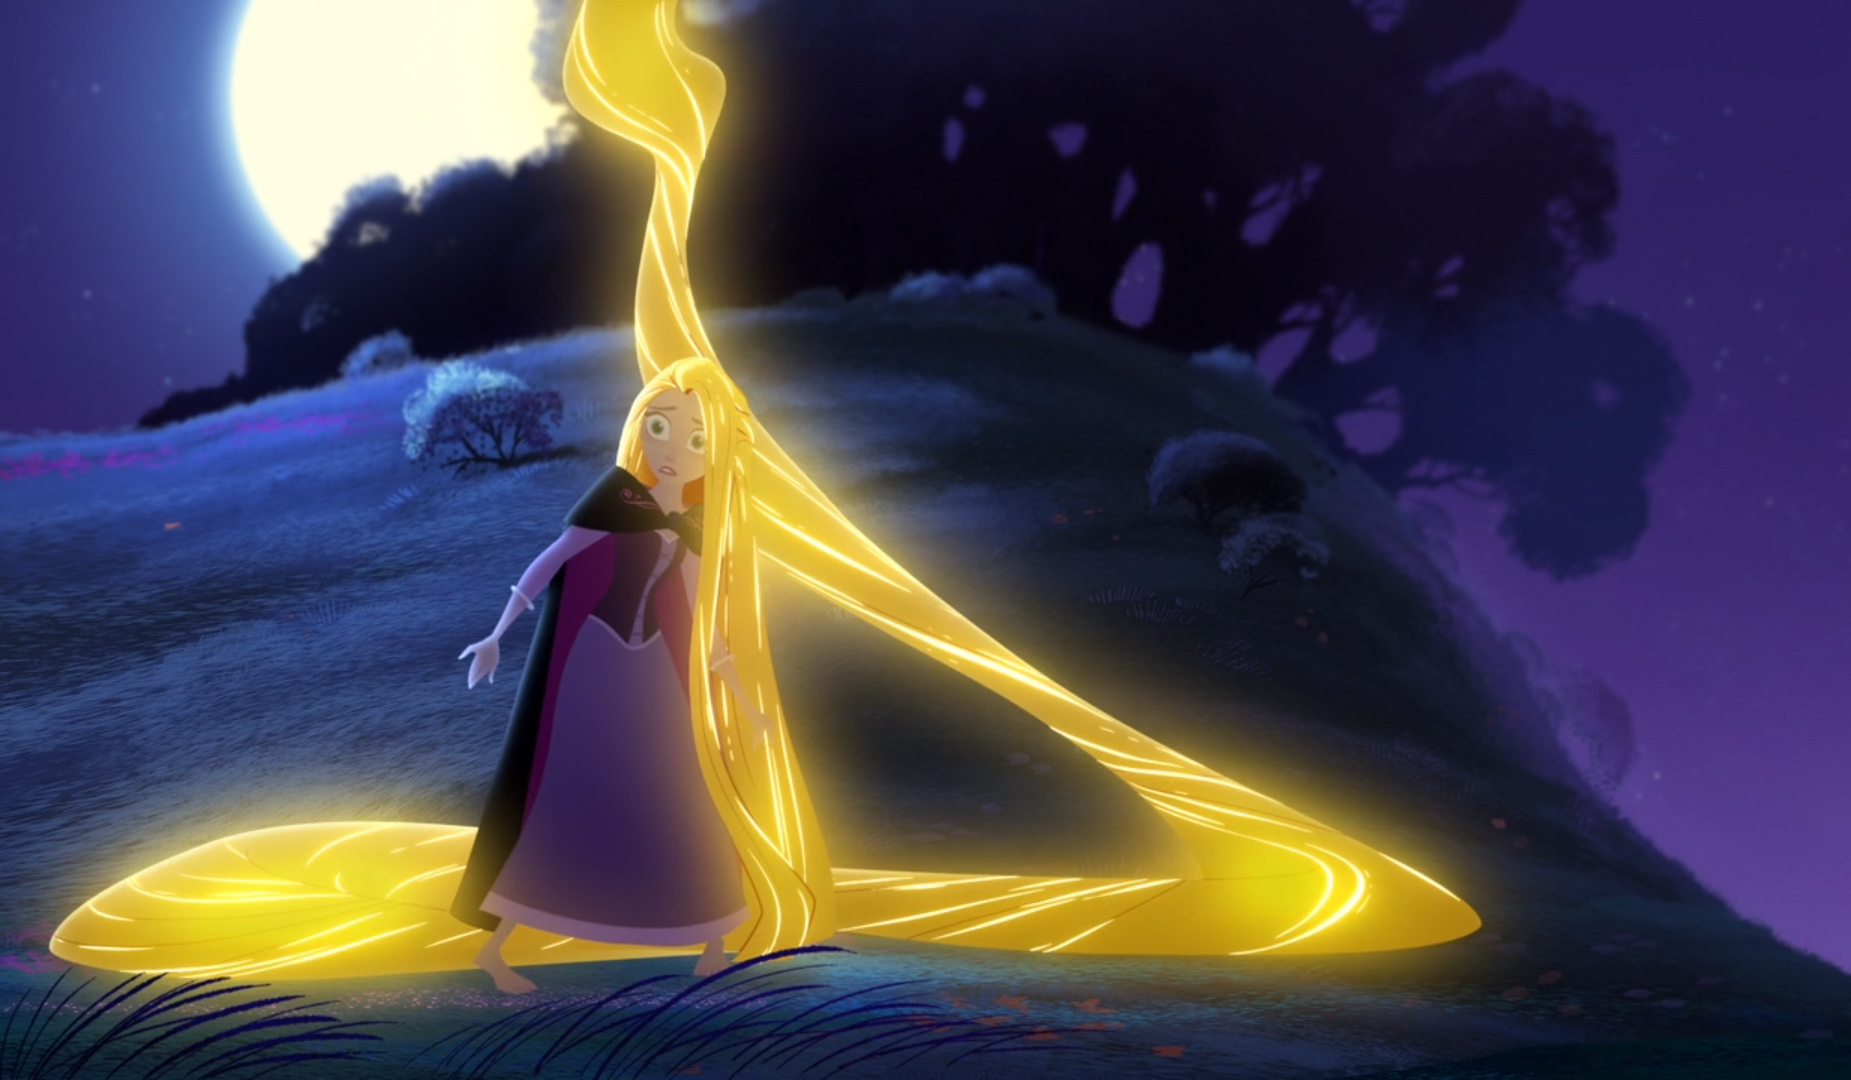 Repunzel with Glowing Hair again.